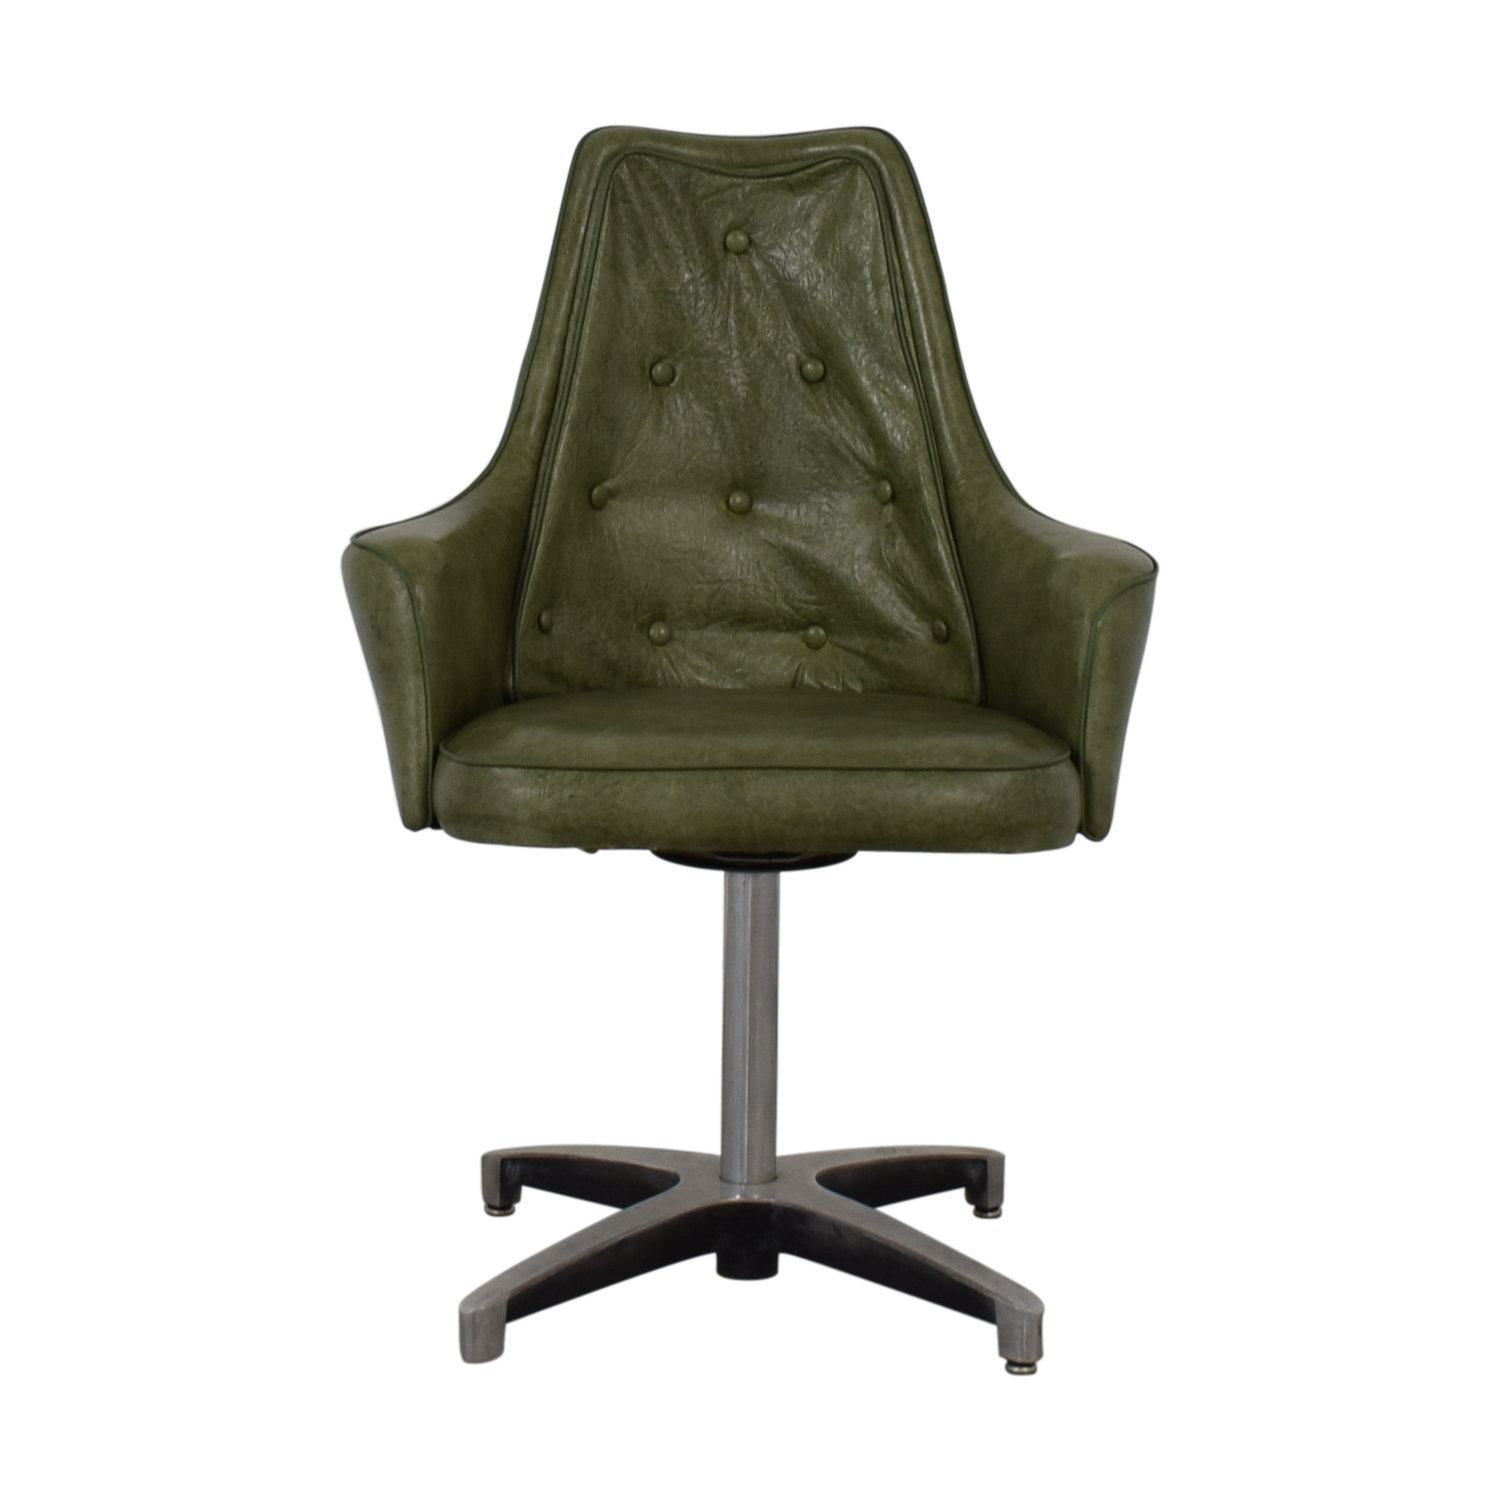 Spartan Chrome Furniture Green Leather Chair / Chairs